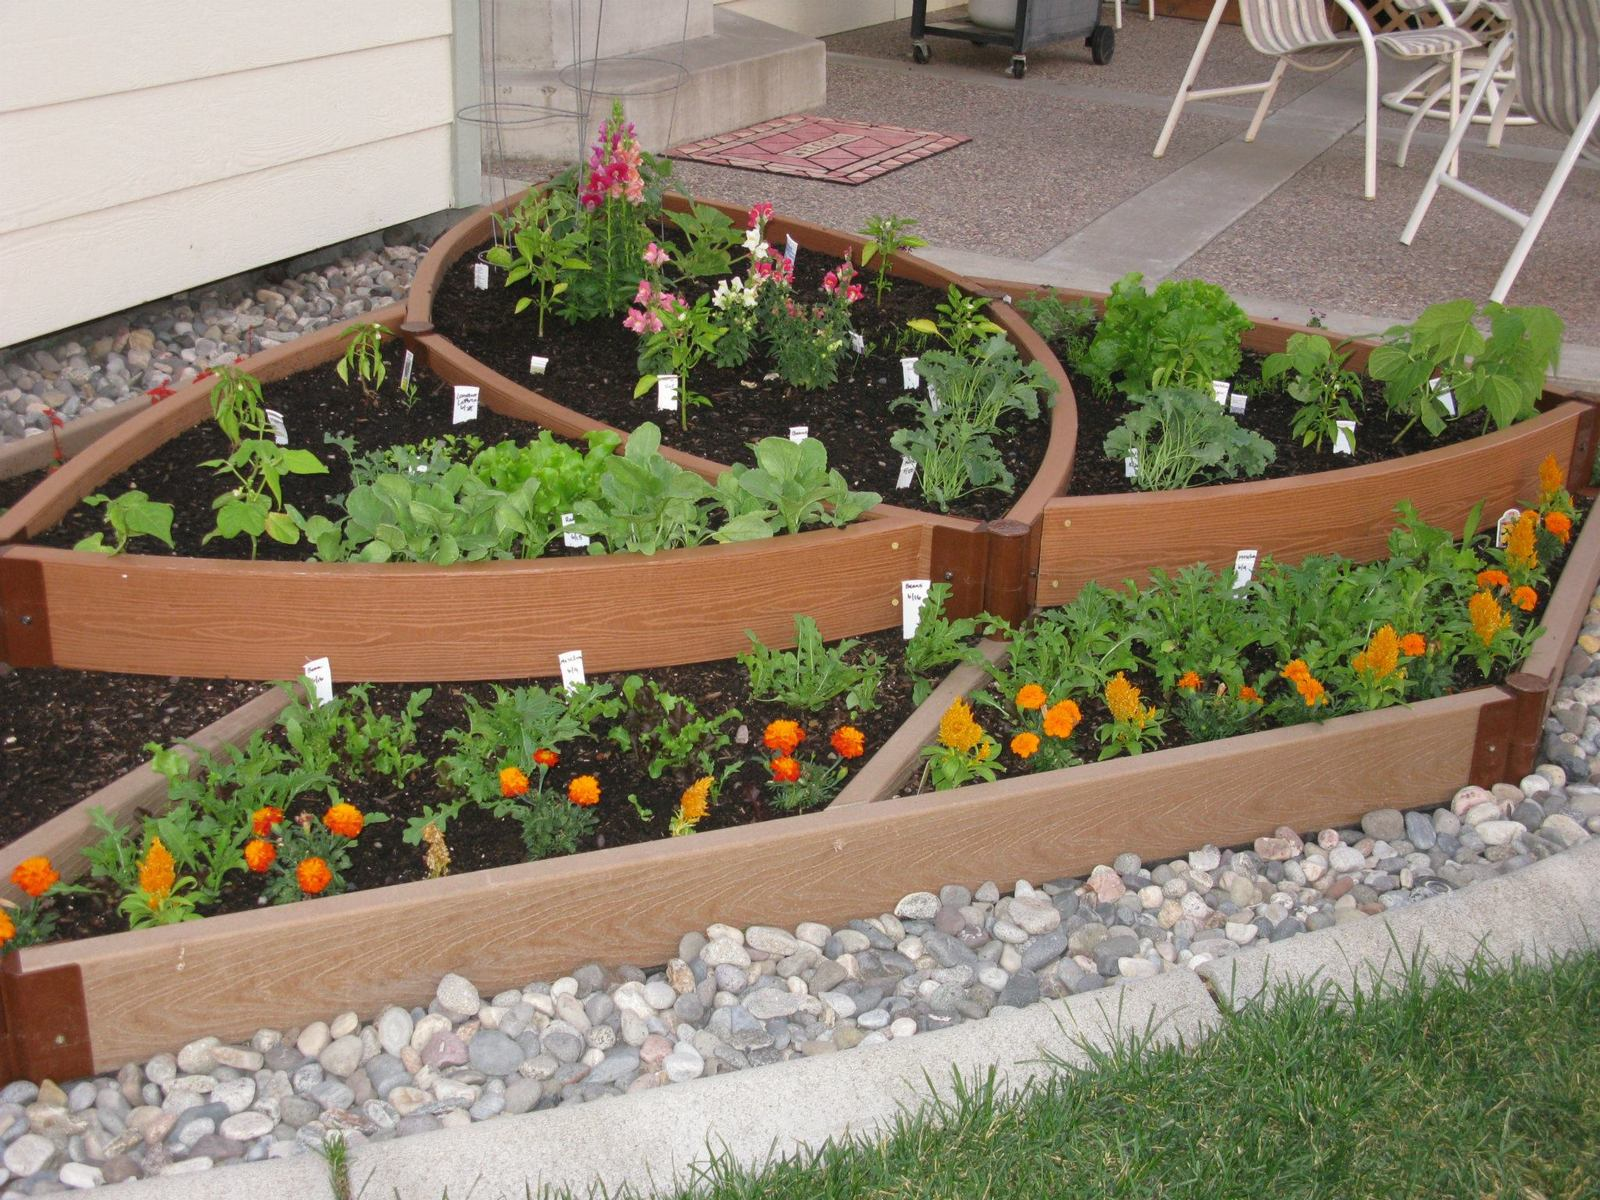 Creative Design For Raised Garden Bed Ideas (Image 3 of 10)